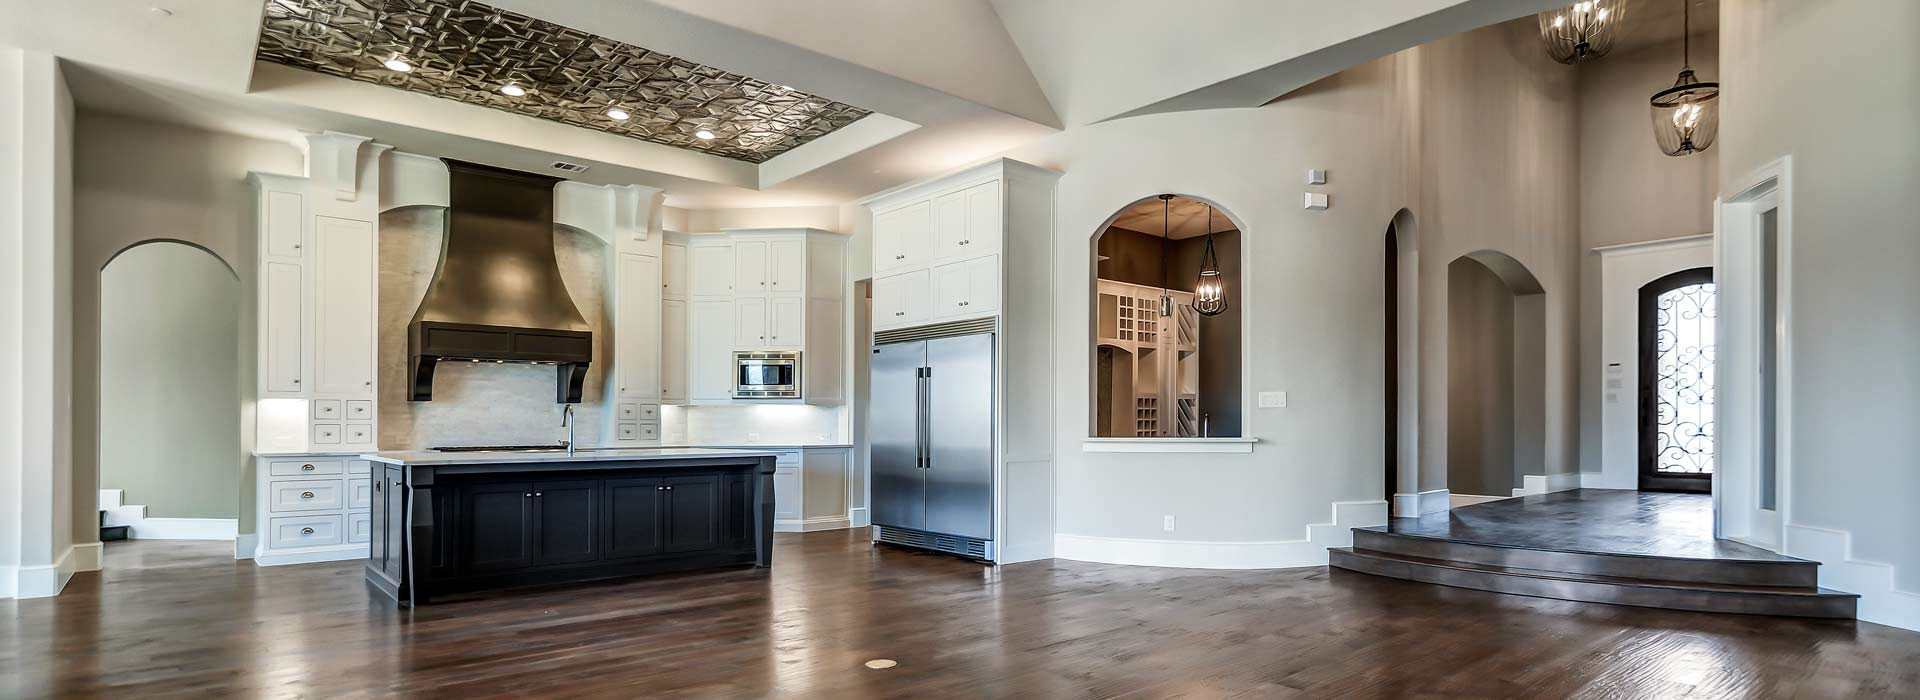 Homes By J Anthony Completed Home Showcase-Prosper TX